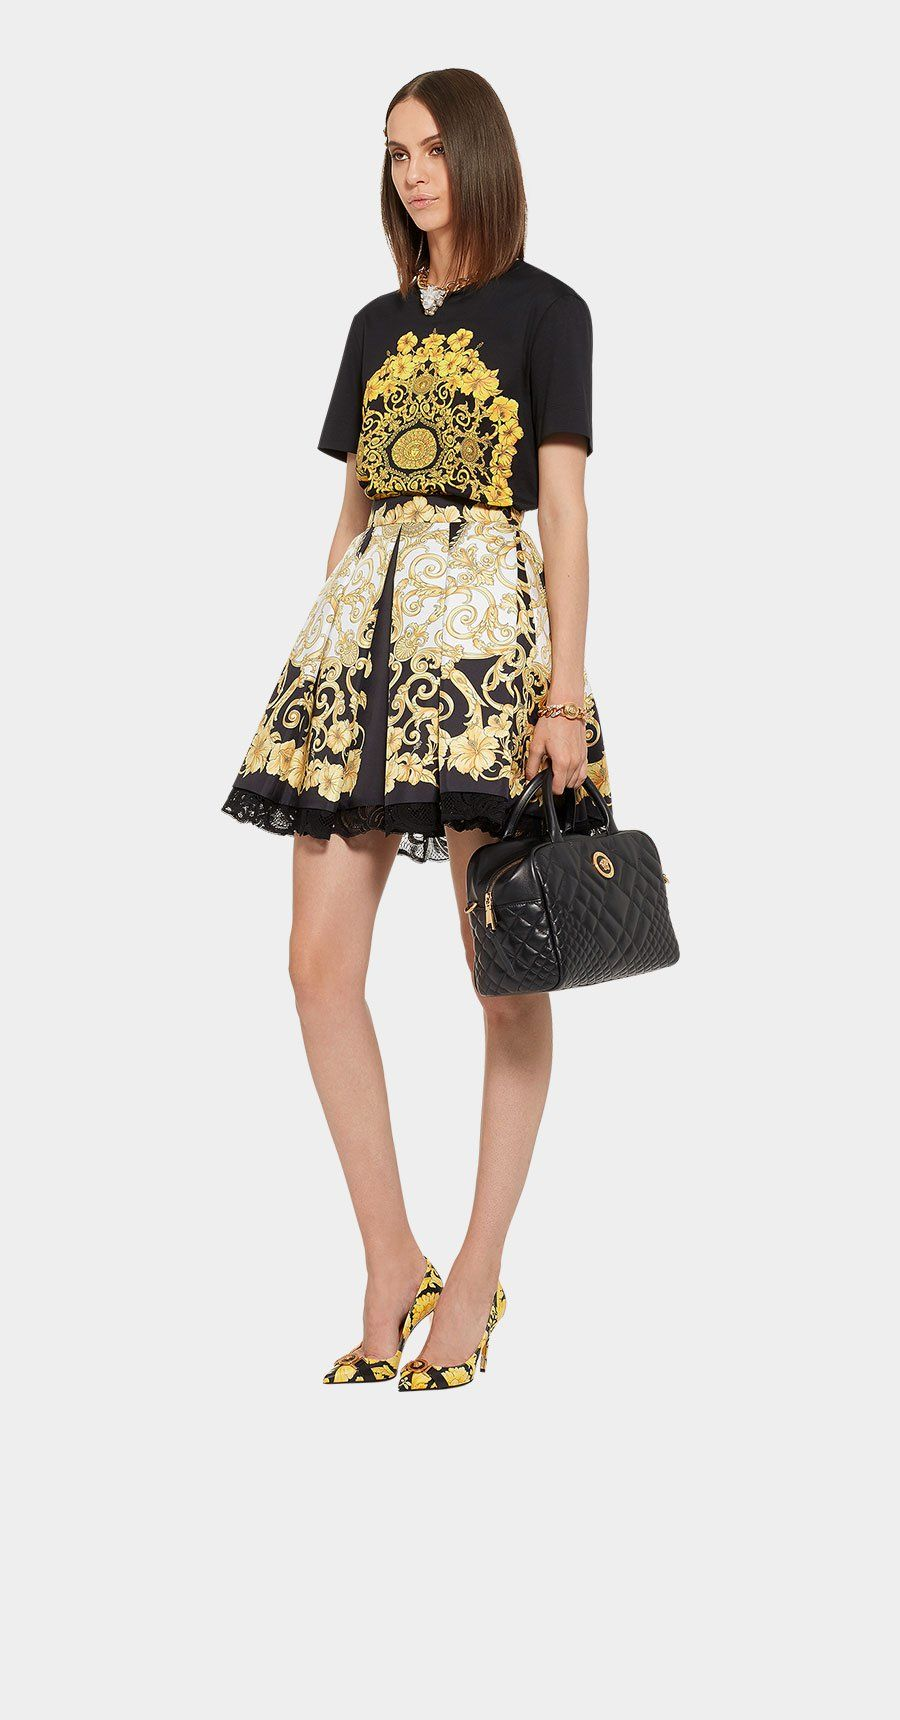 Store For Online Arrivals World's Versace In New End WomenUs L54AjR